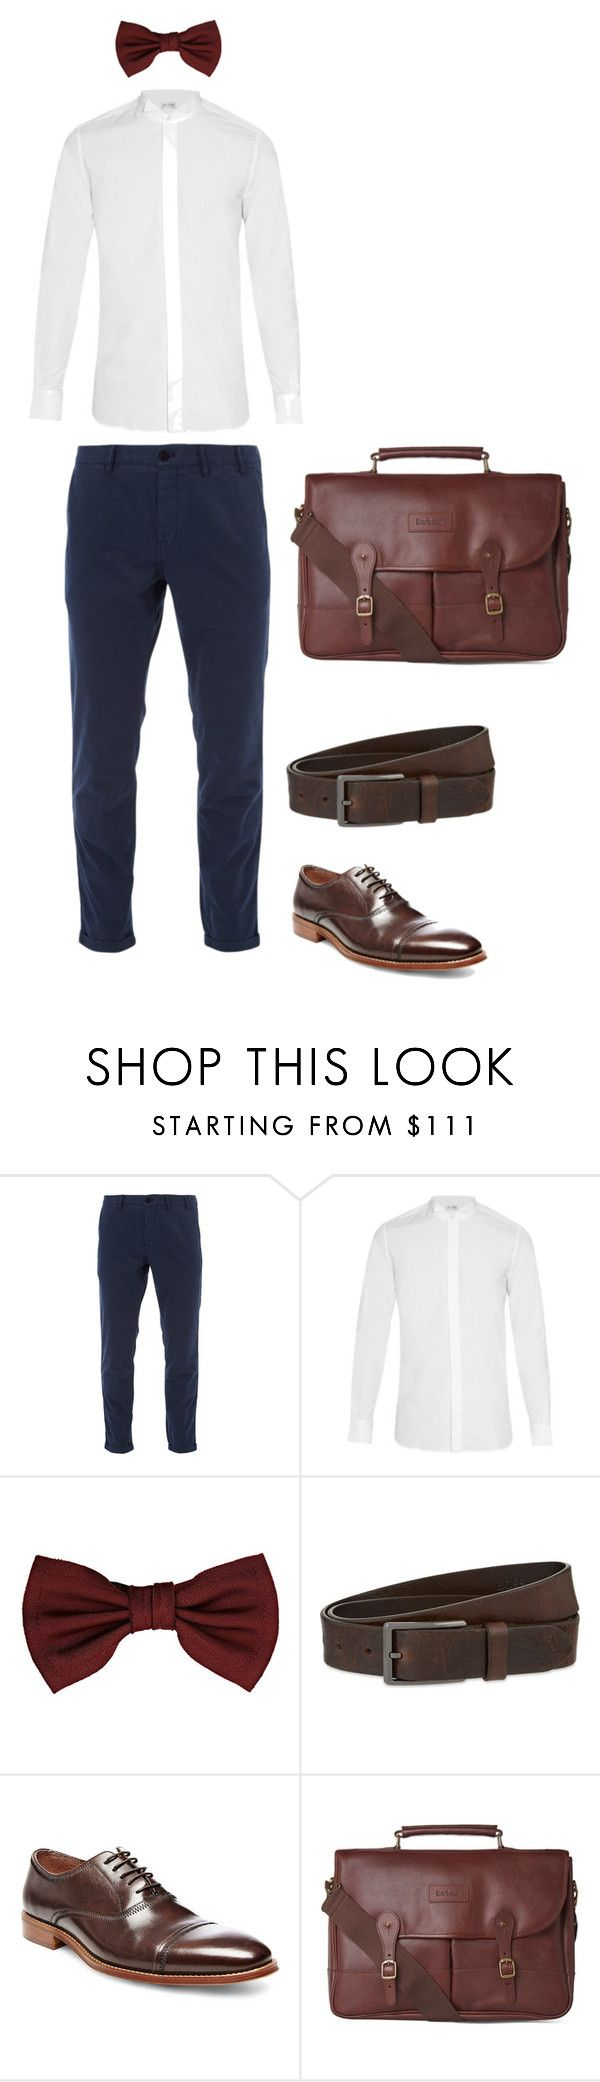 """Look 1 - WILSONS"" by kirravanblanken on Polyvore featuring Norse Projects, Yves Saint Laurent, Lanvin, HUGO, Steve Madden, Barbour, men's fashion and menswear"